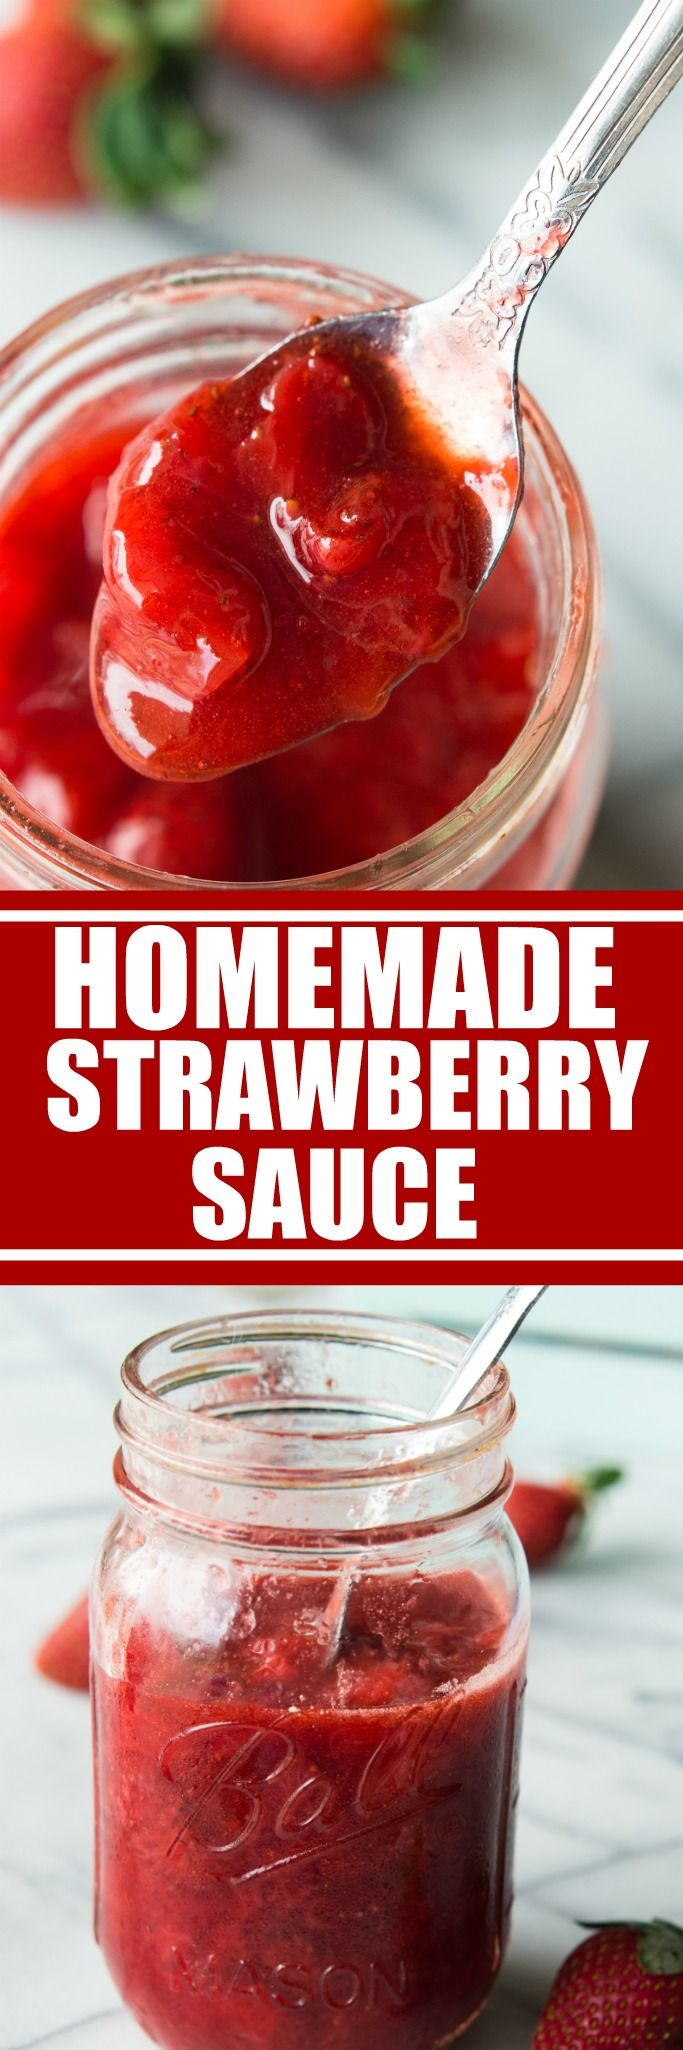 Homemade Strawberry Sauce ❤︎ Leave a like, save this pin and follow more content if you loved this